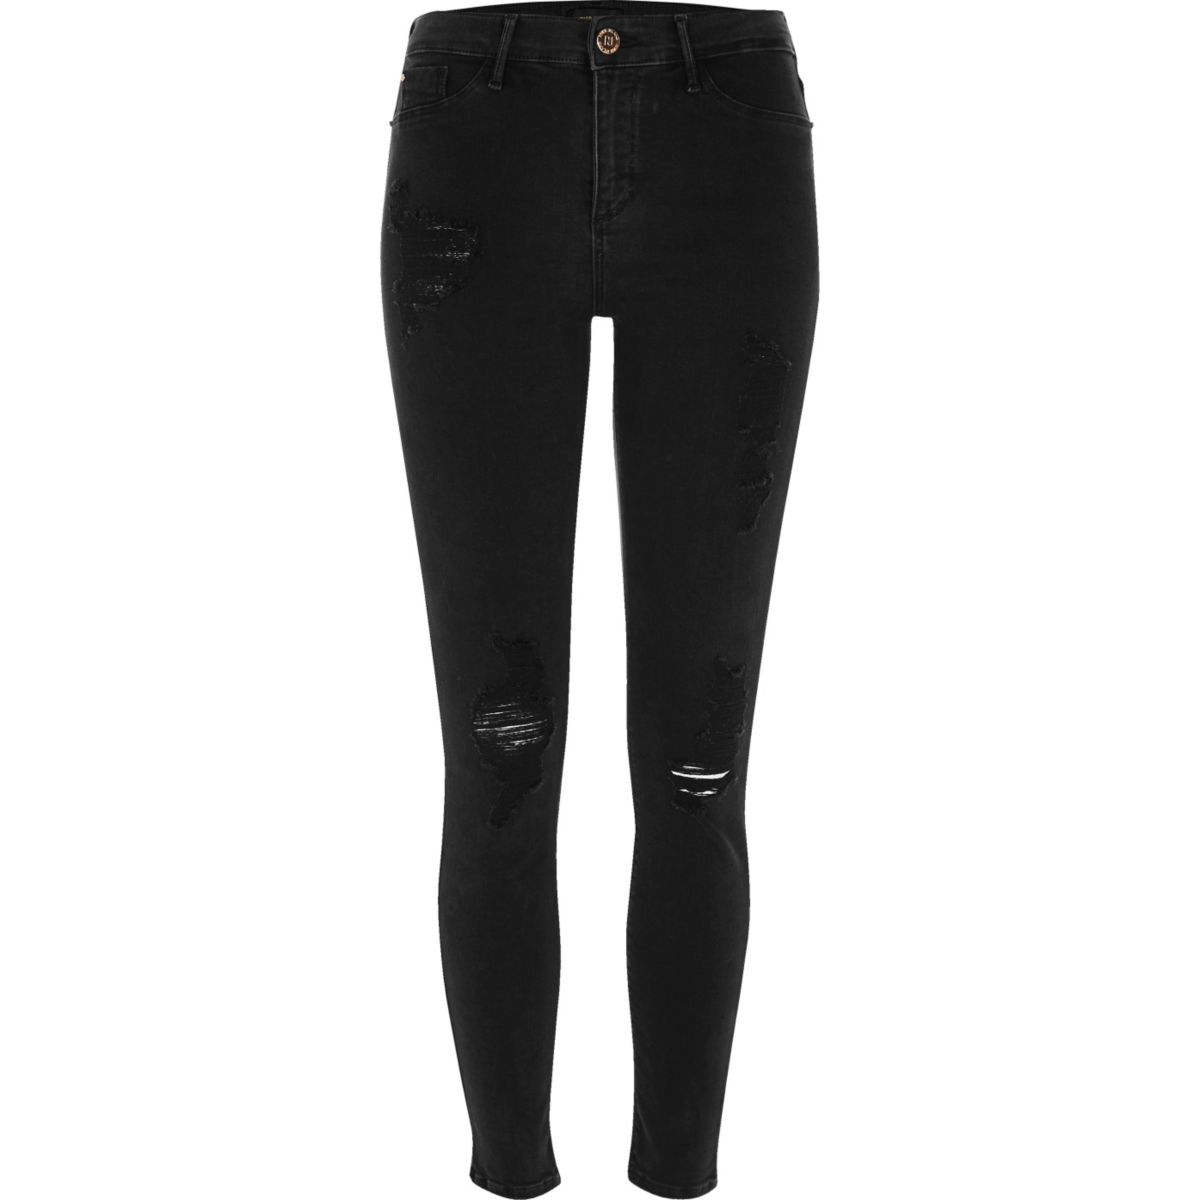 Online shopping for popular & hot Jeggings with Zipper from Women's Clothing & Accessories, Leggings, Jeans, Pants & Capris and more related Jeggings with Zipper like zipper jeggings black, black zipper jeggings, leggings with zip, legging with zip.